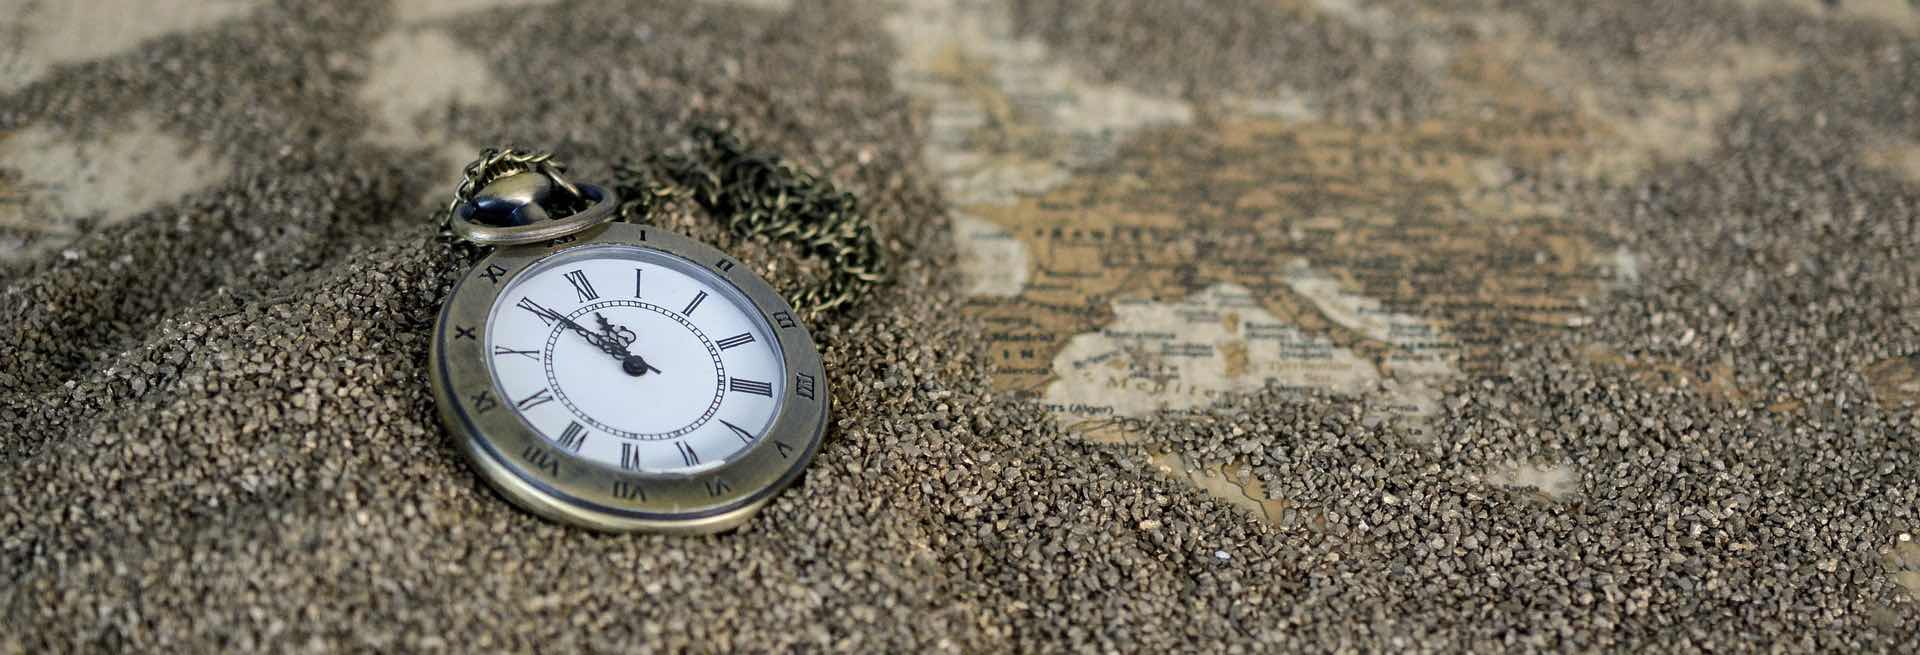 A few tips for handling and manipulating timezones